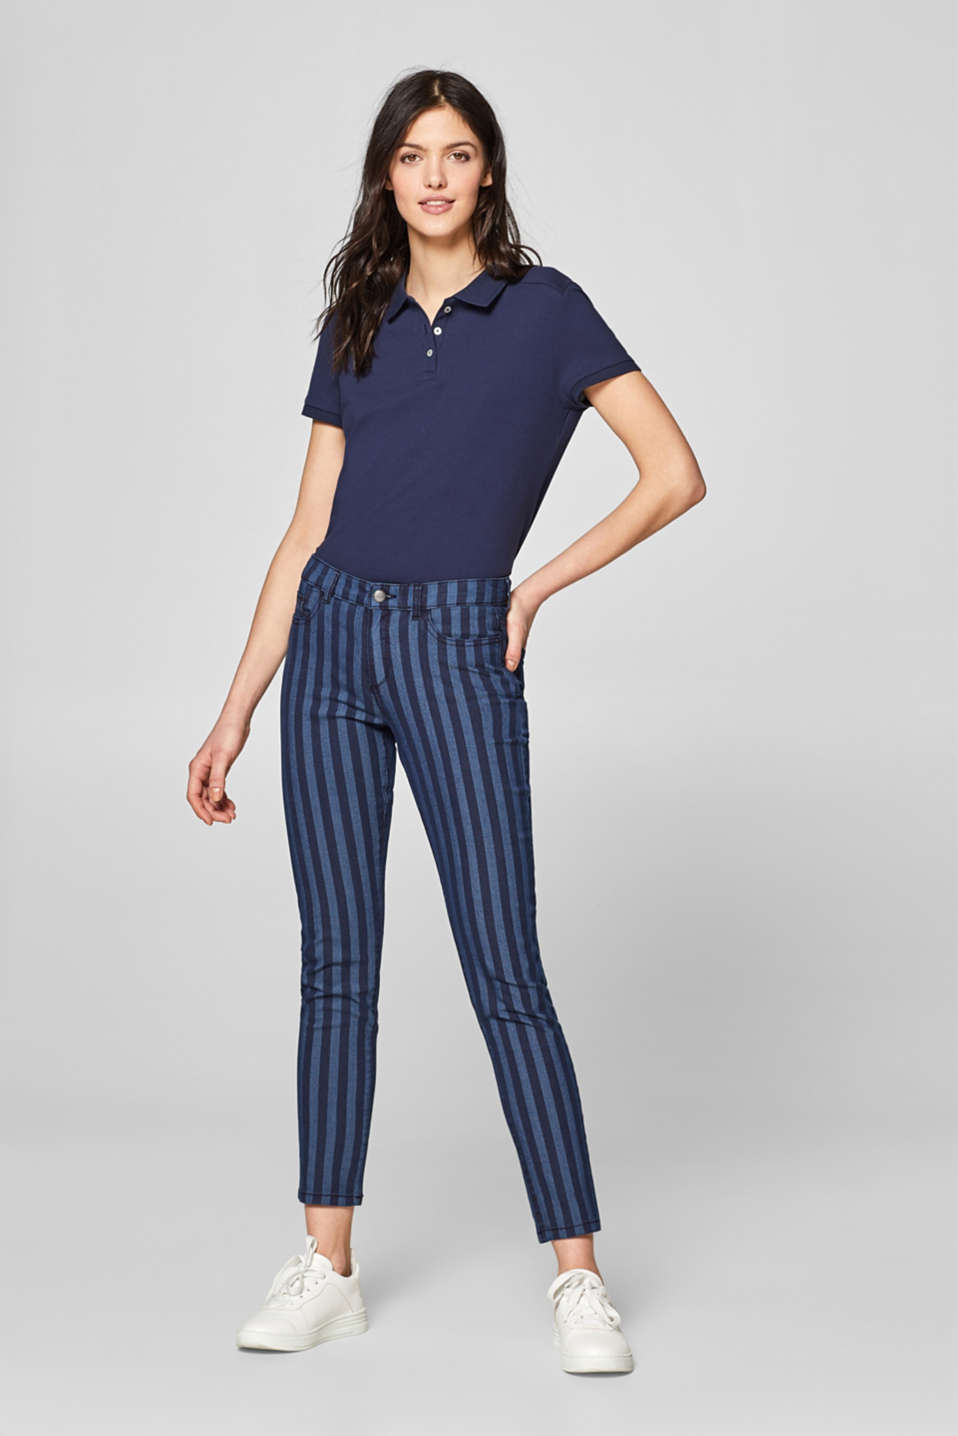 edc - Stretch trousers with a striped pattern